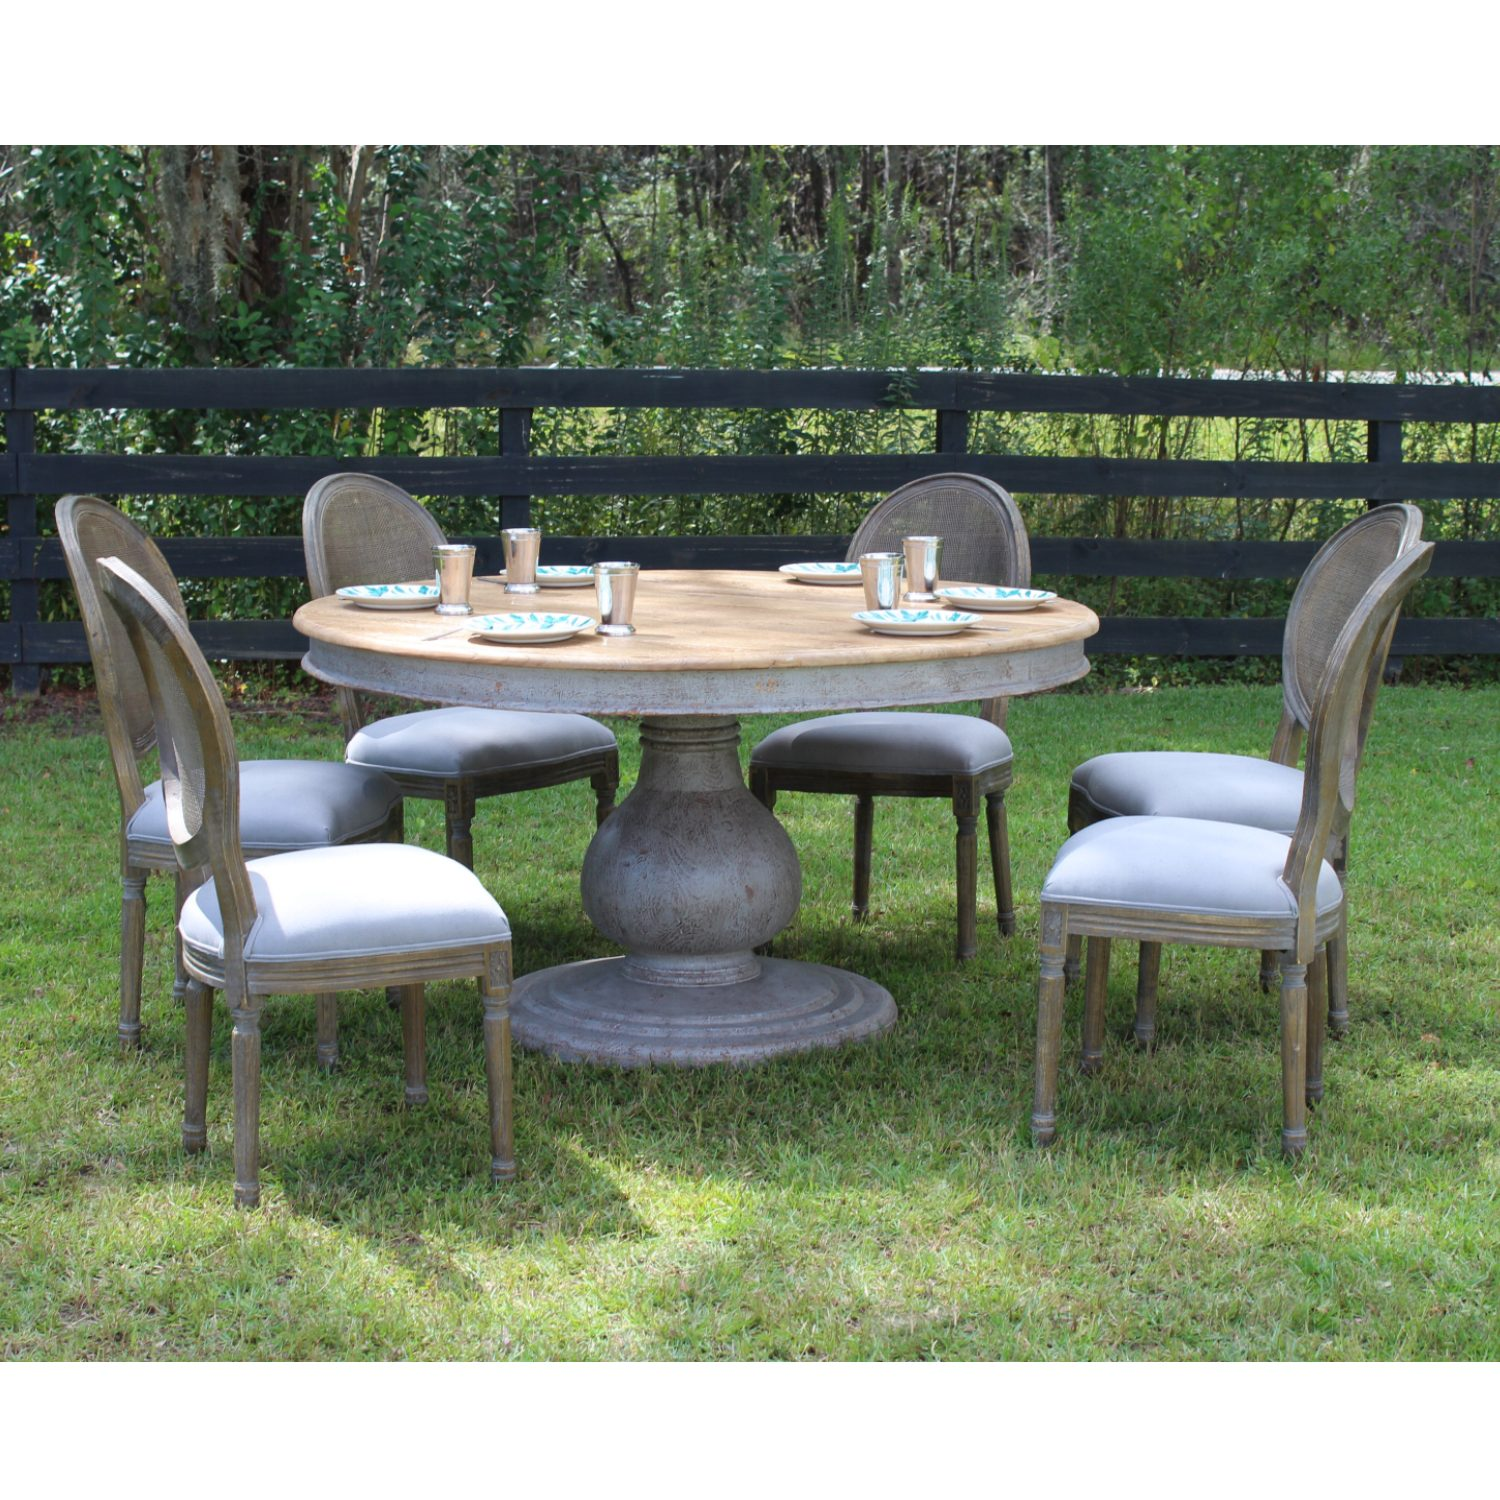 Admirable Gray Recycled Wood Inspired Dining Room Large Round Pillar Table Six Chairs Set Ibusinesslaw Wood Chair Design Ideas Ibusinesslaworg